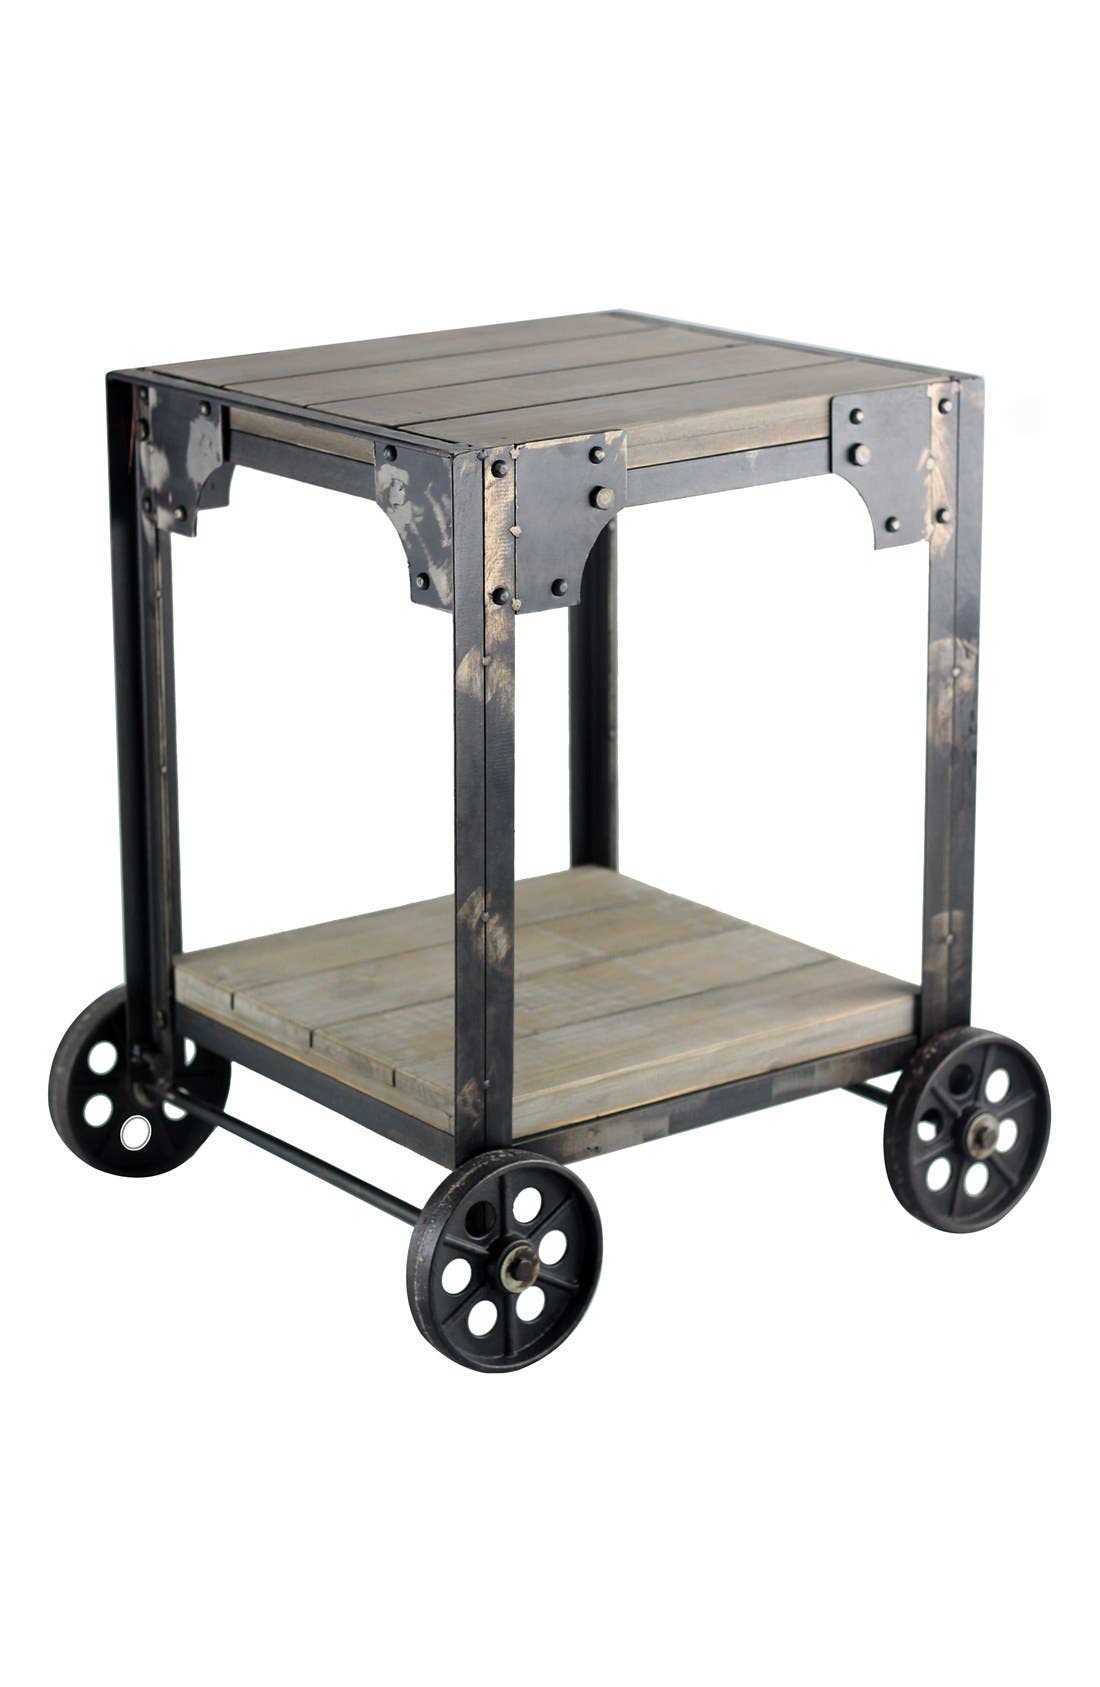 Main Image - VIP International Industrial End Table